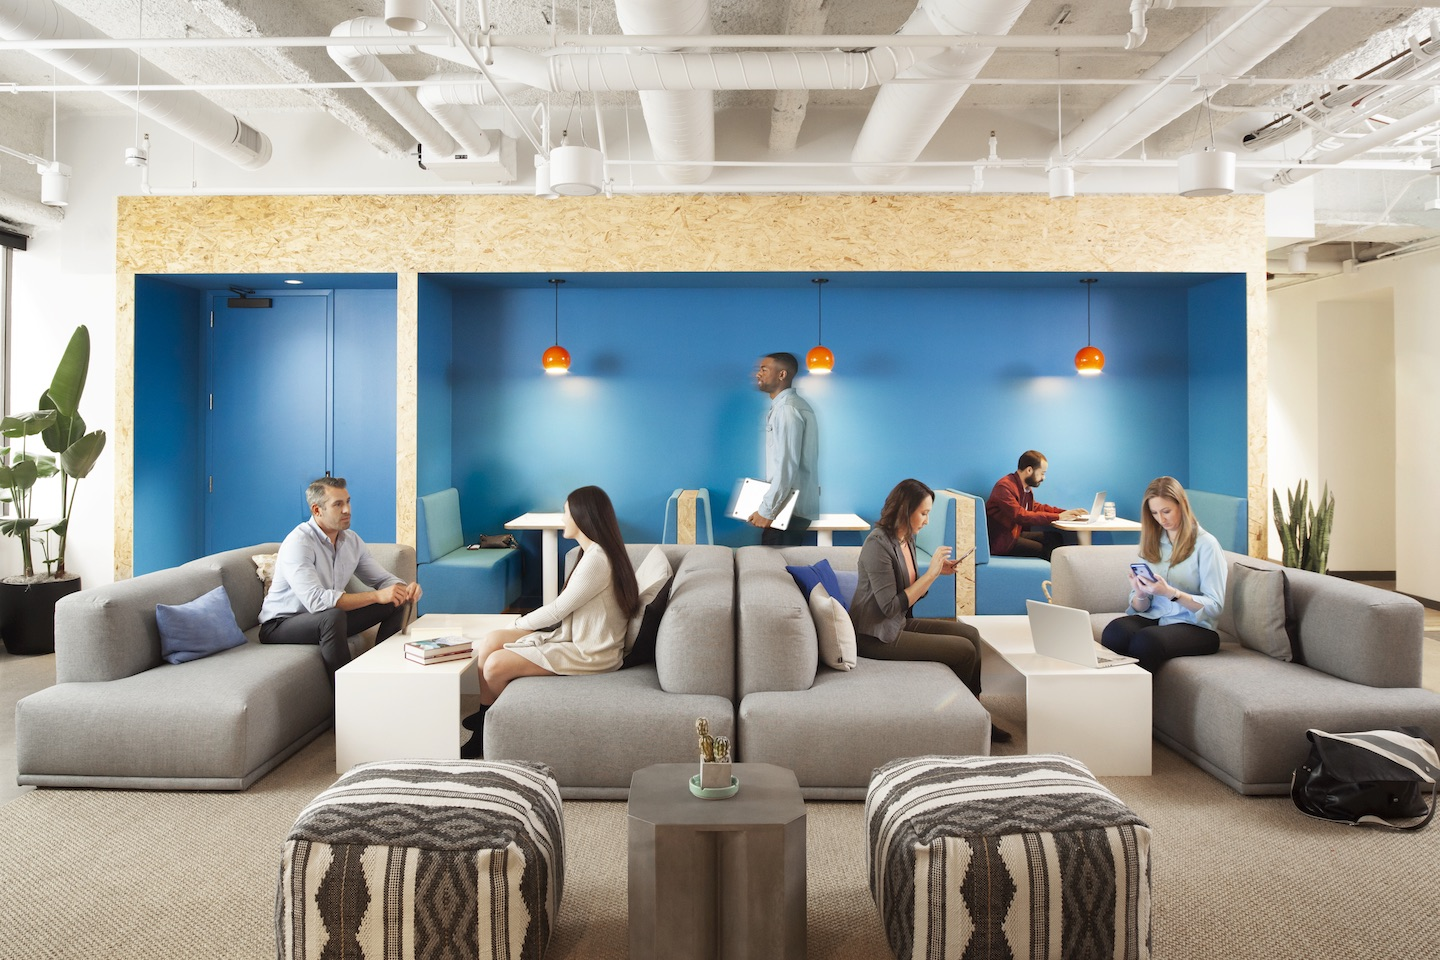 TripActions's lounge at a WeWork in San Francisco. Photographs by Helynn Ospina